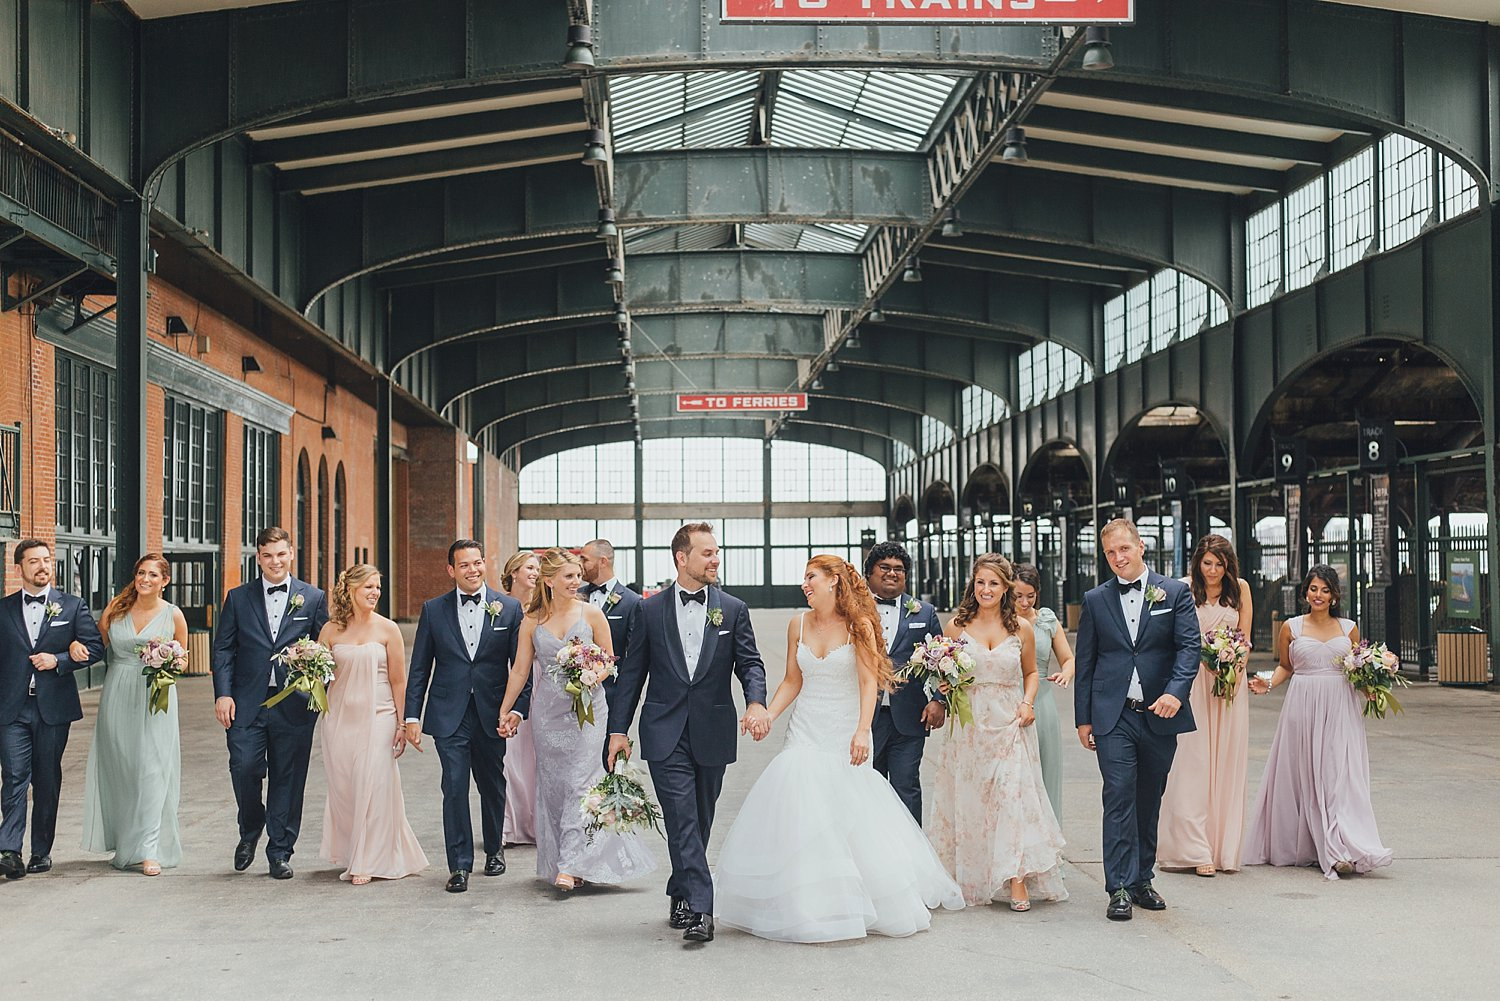 nyc-wedding-photography-nj-tri-state-cinematography-intothestory-by-moo-jae_0298.jpg